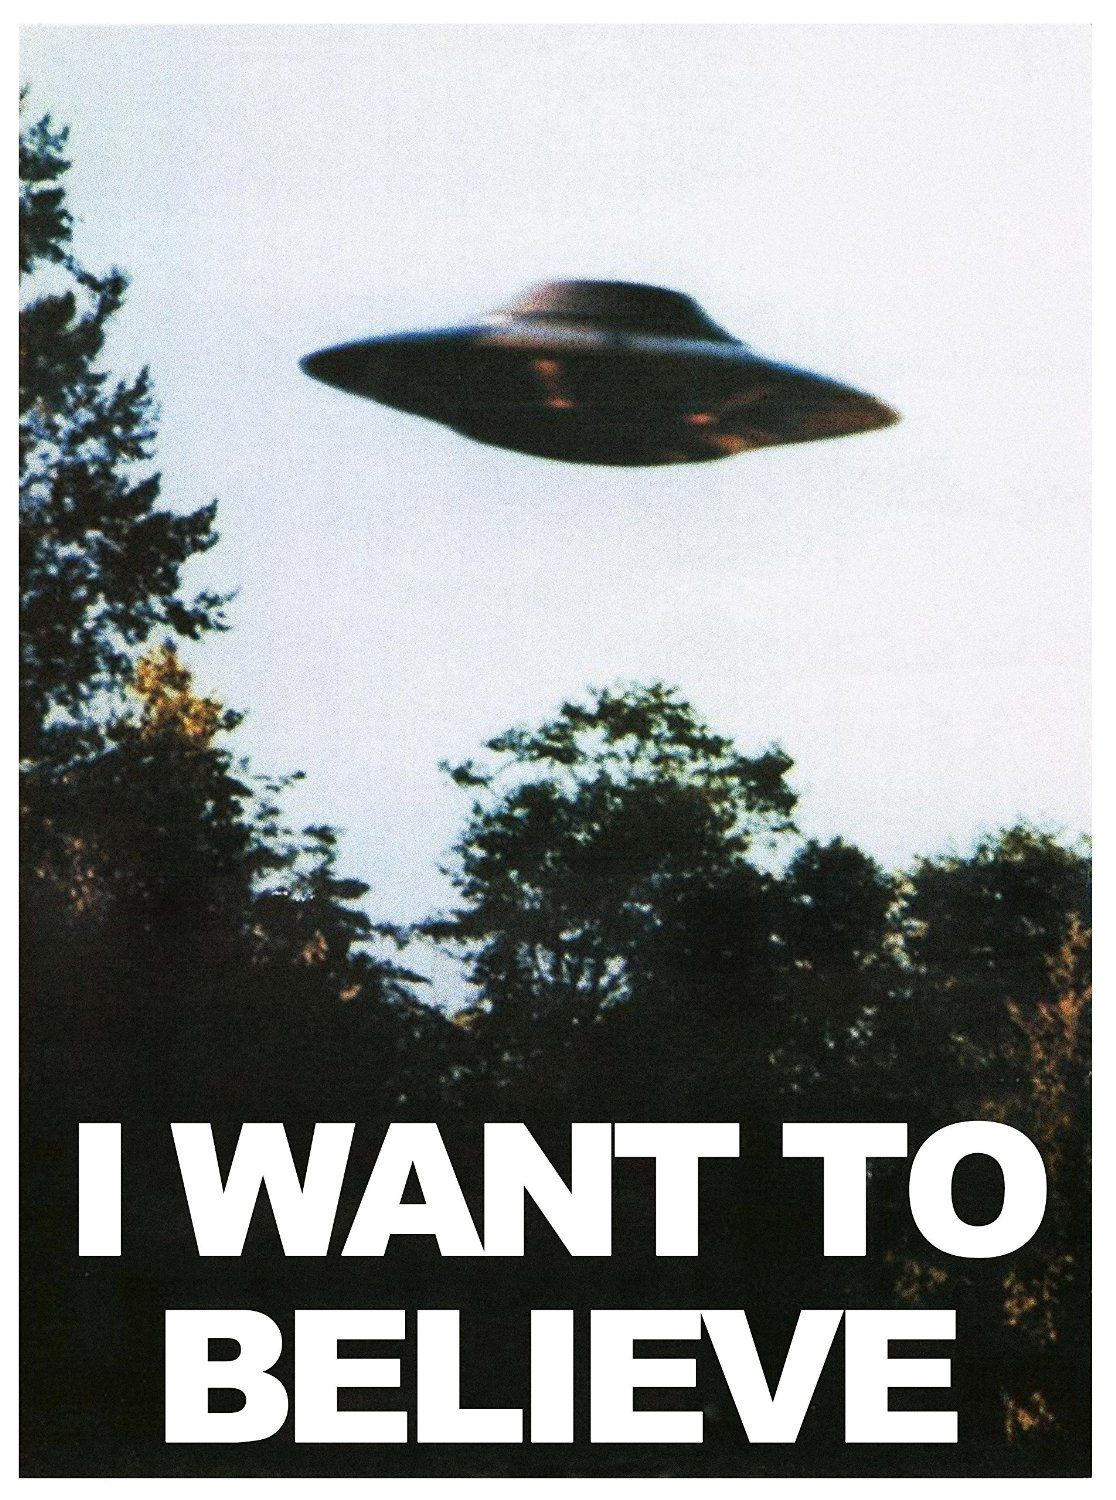 I want to believe. – The X-Files thedailyquotes.com ... X Files I Want To Believe Ending